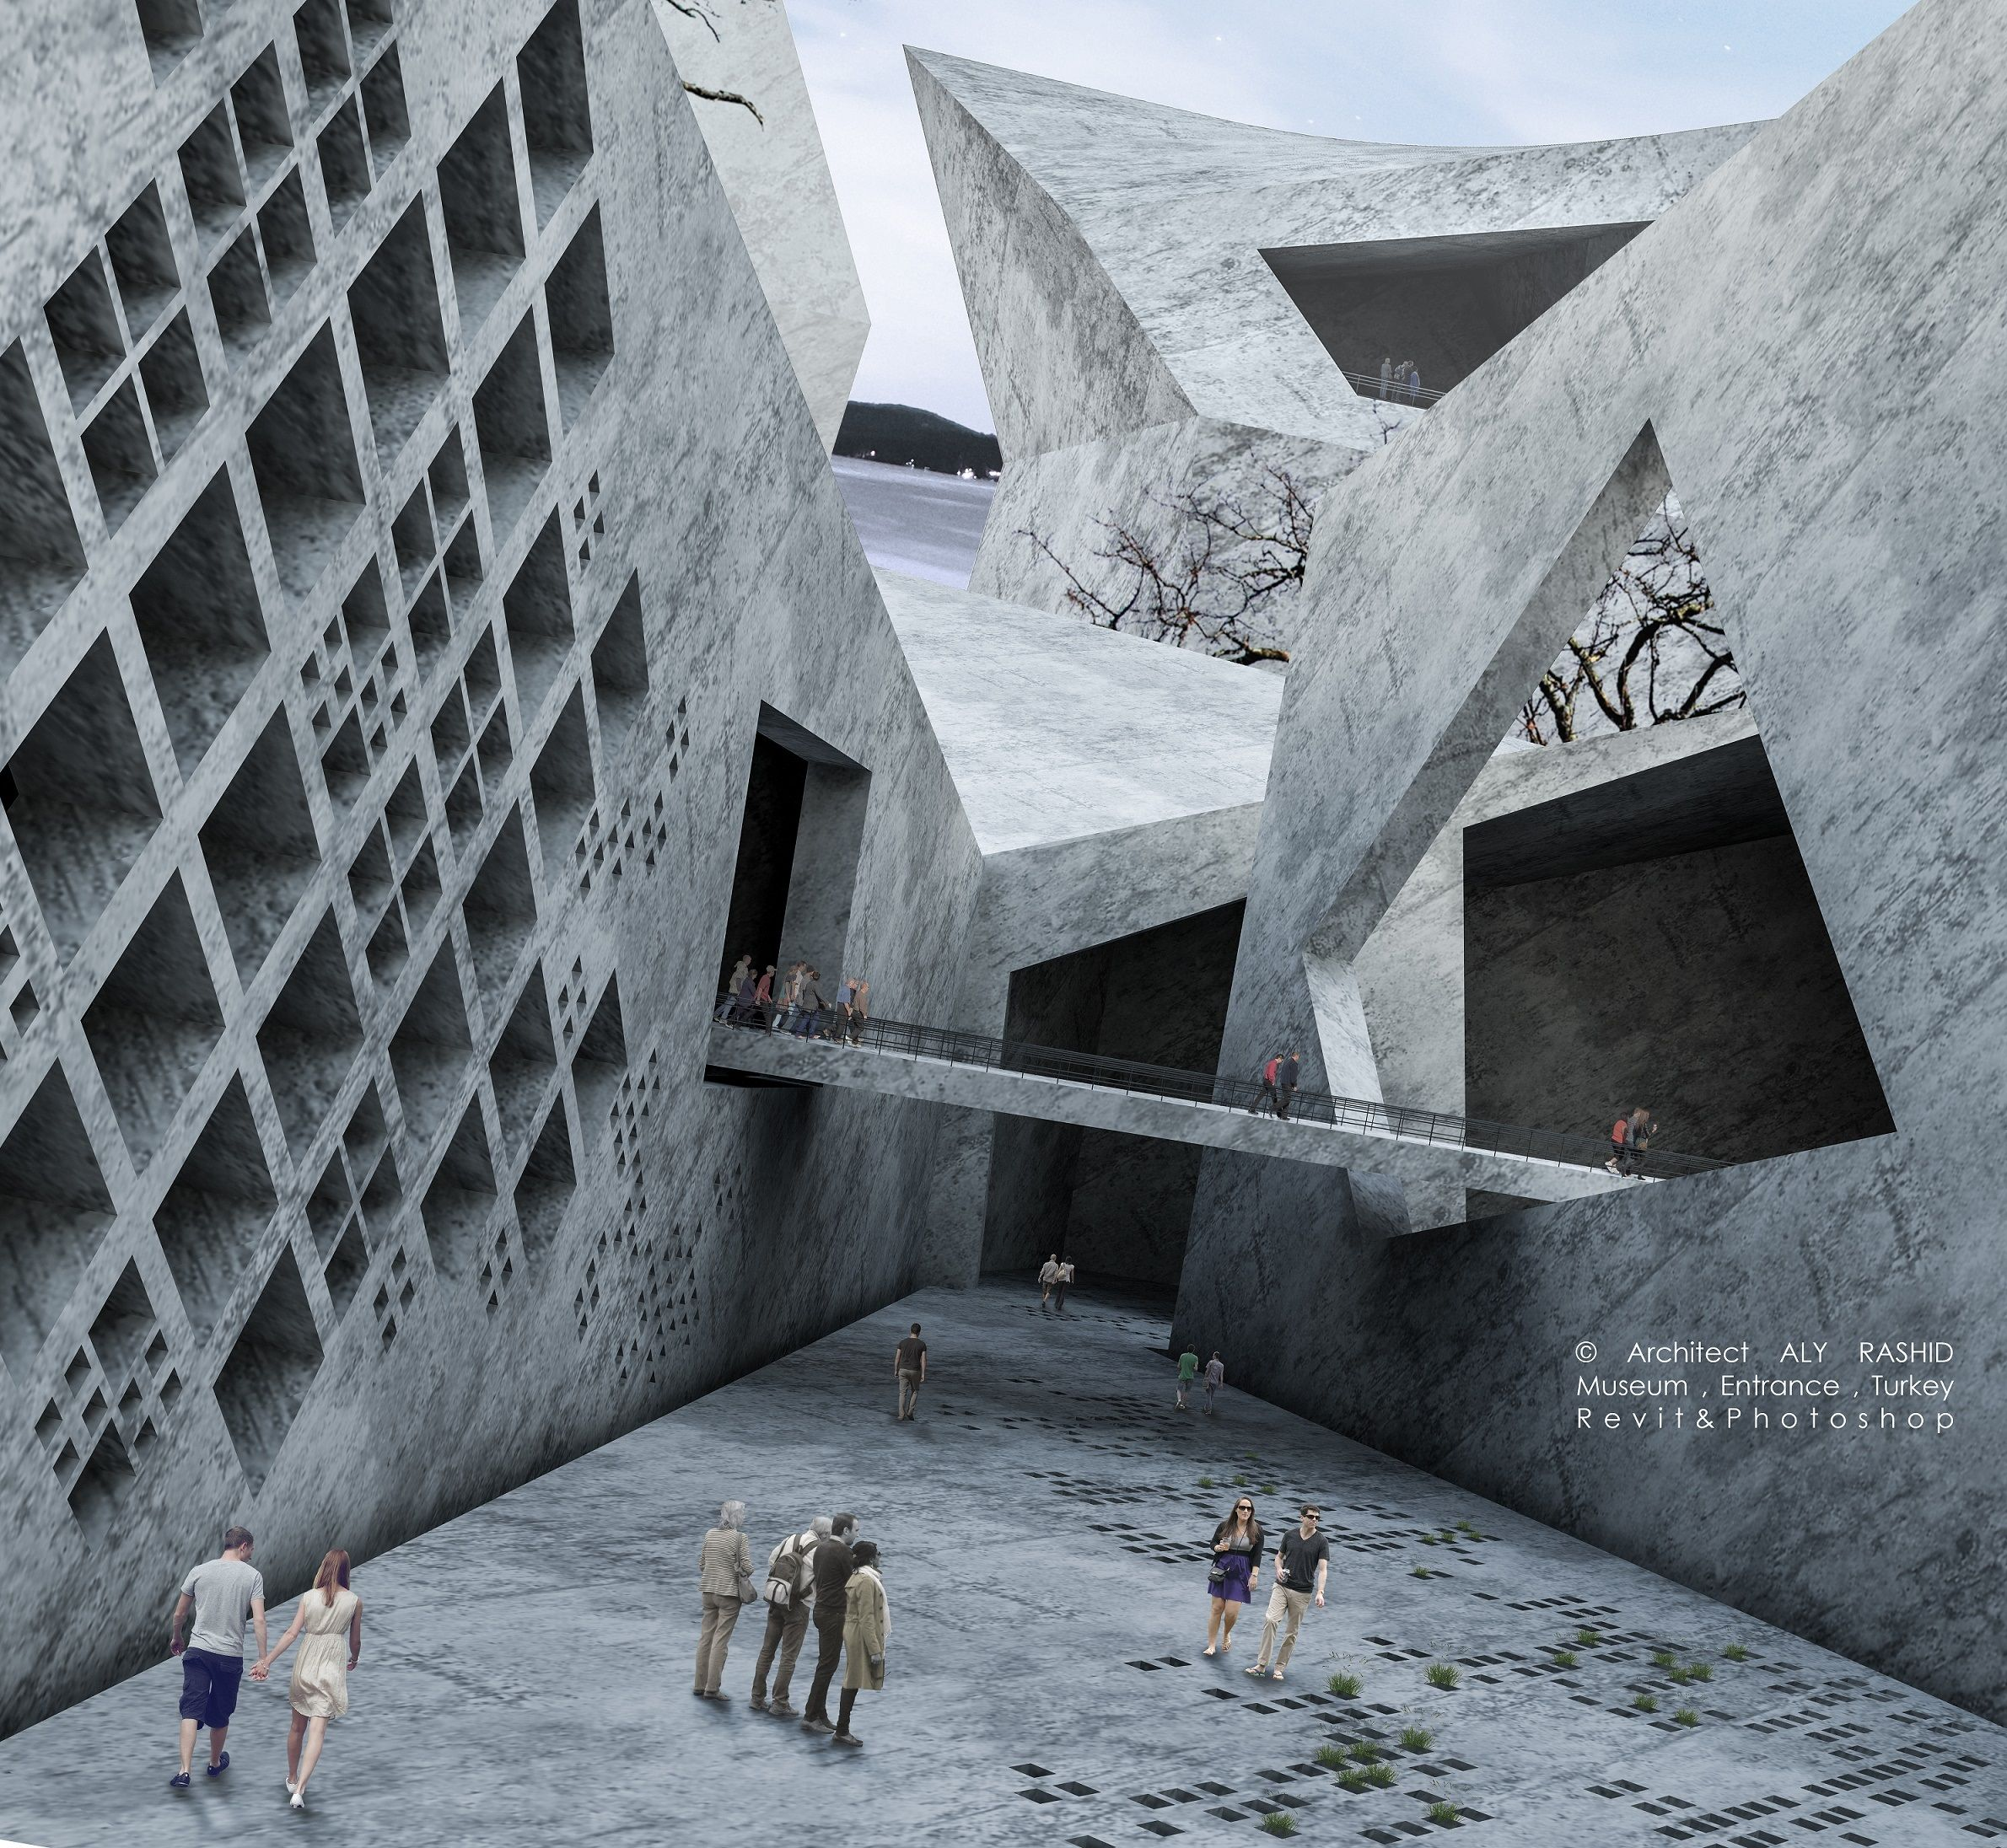 Pin By Aly Rashid On Architecture Architecture Building Landmarks